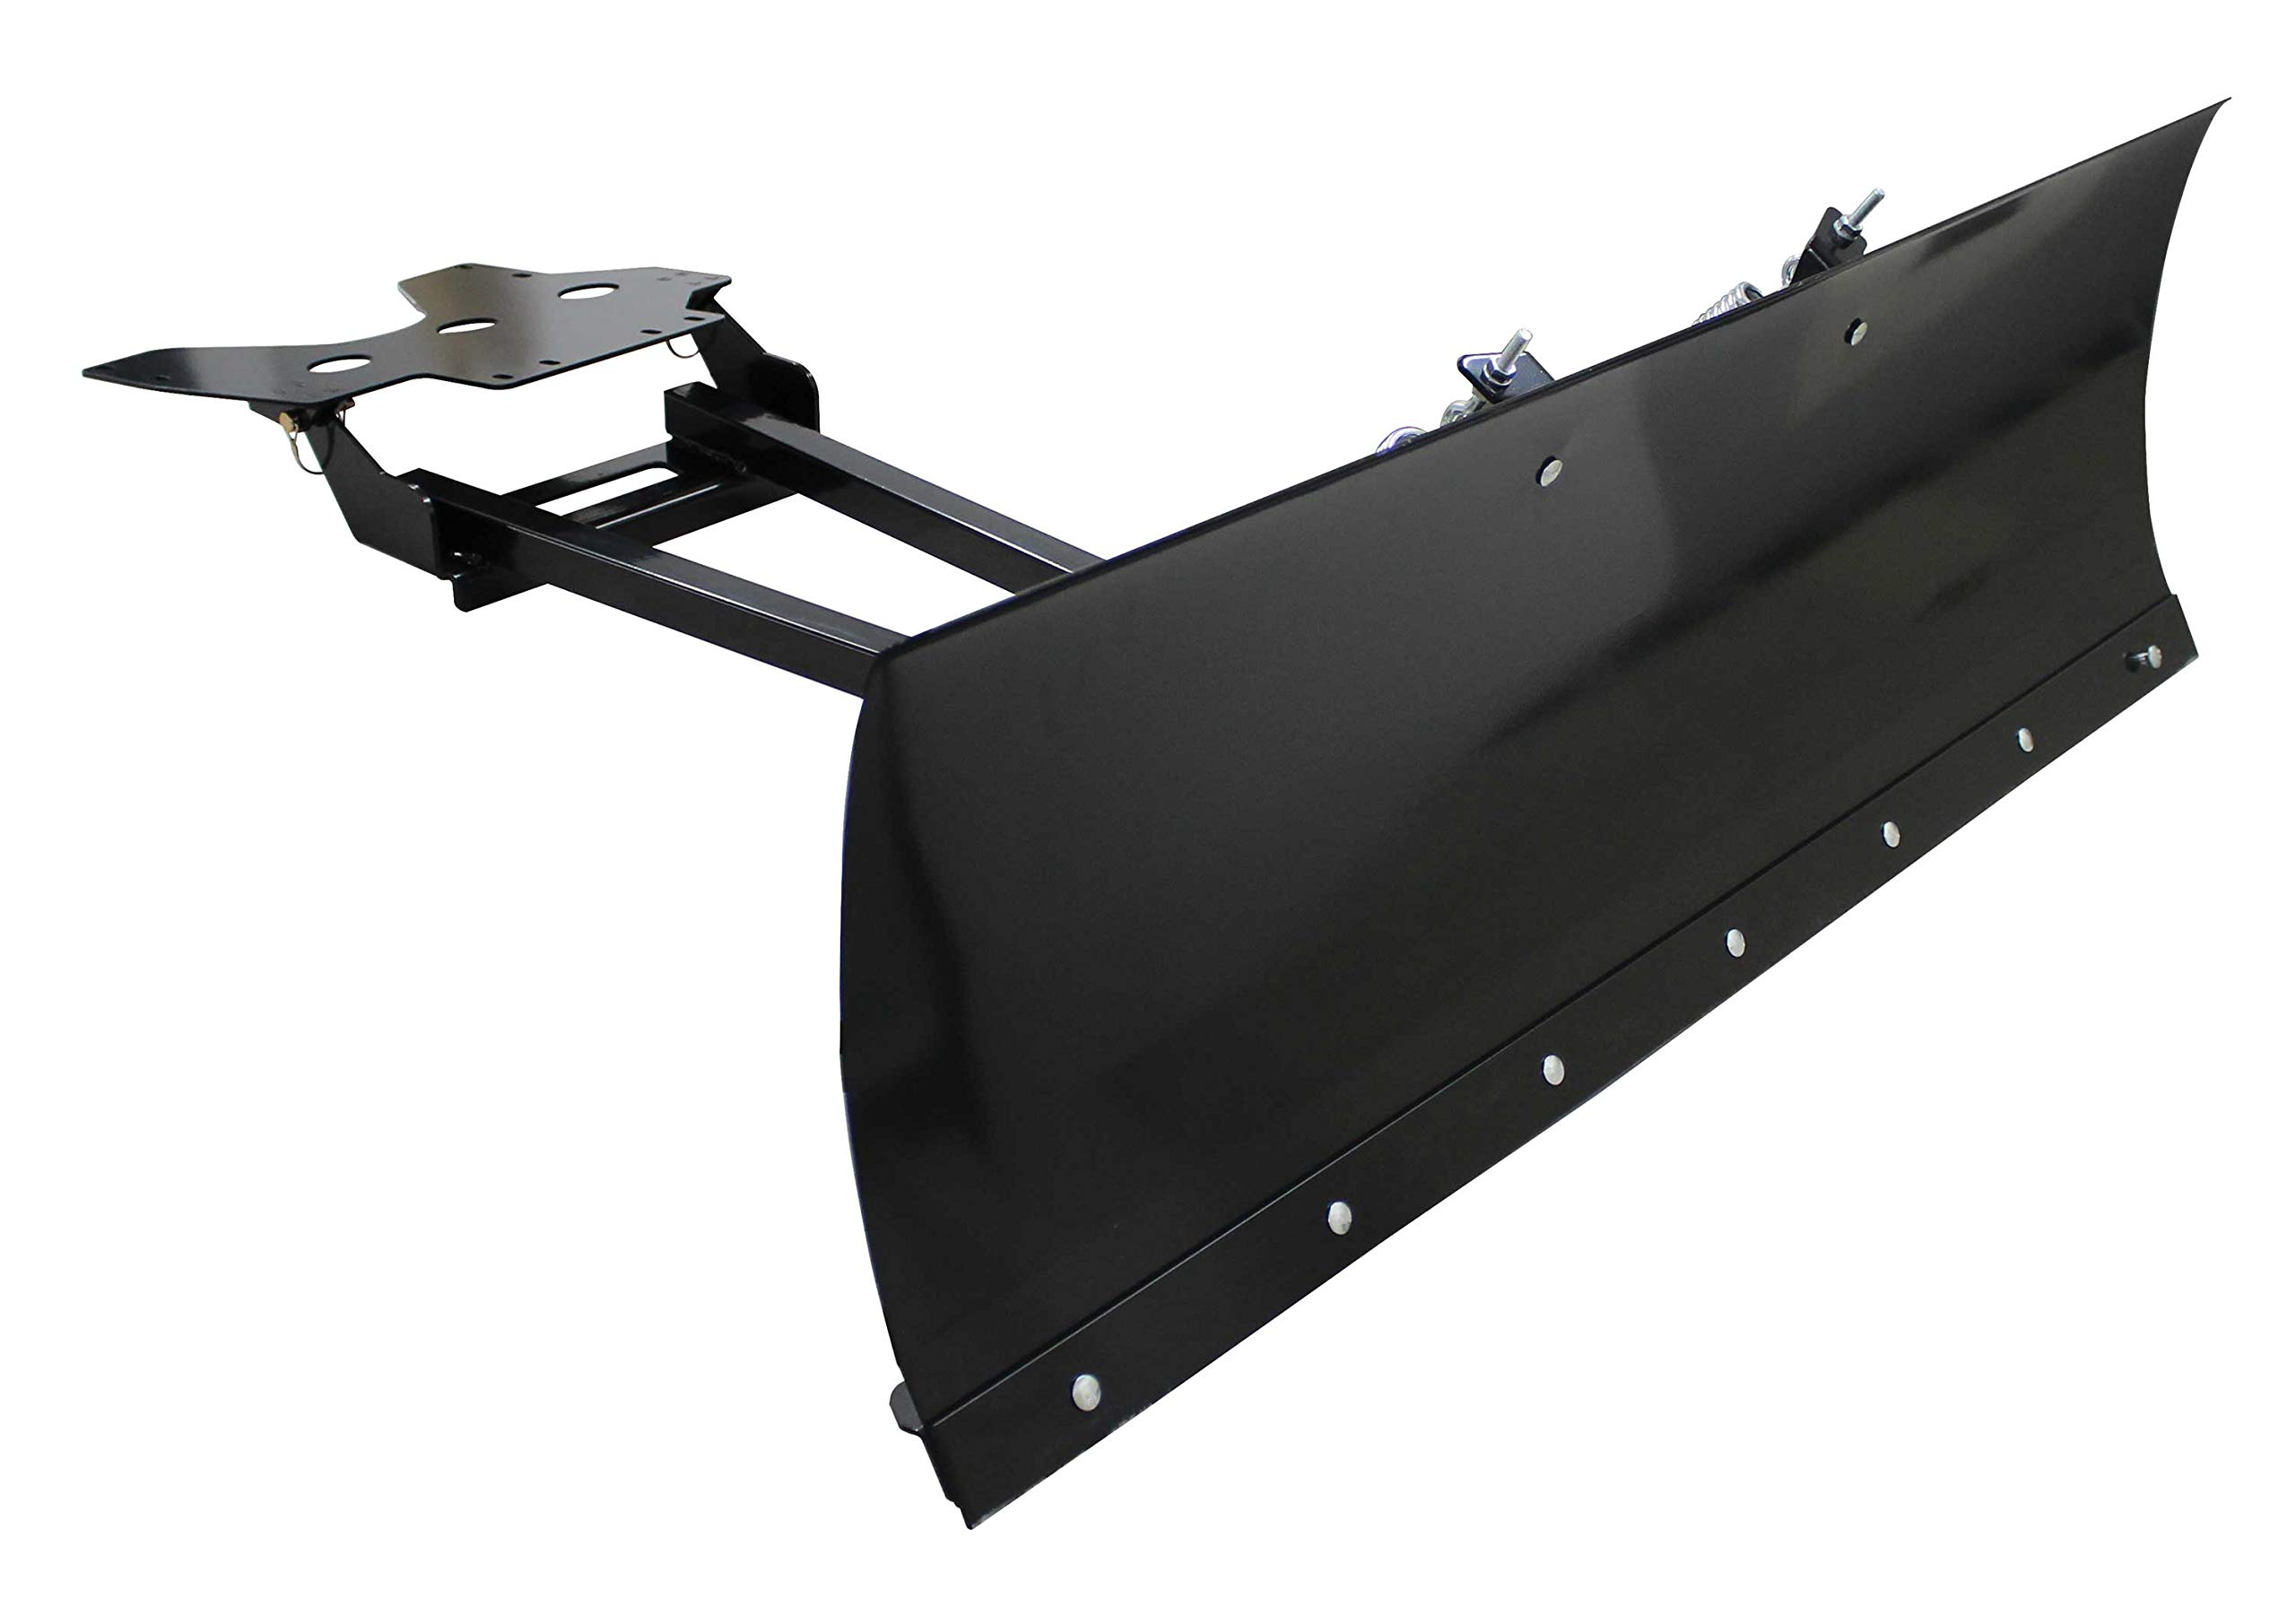 Extreme Max 5500.5097 UniPlow One-Box ATV Plow with Polaris Sportsman 570 Mount by Extreme Max (Image #1)